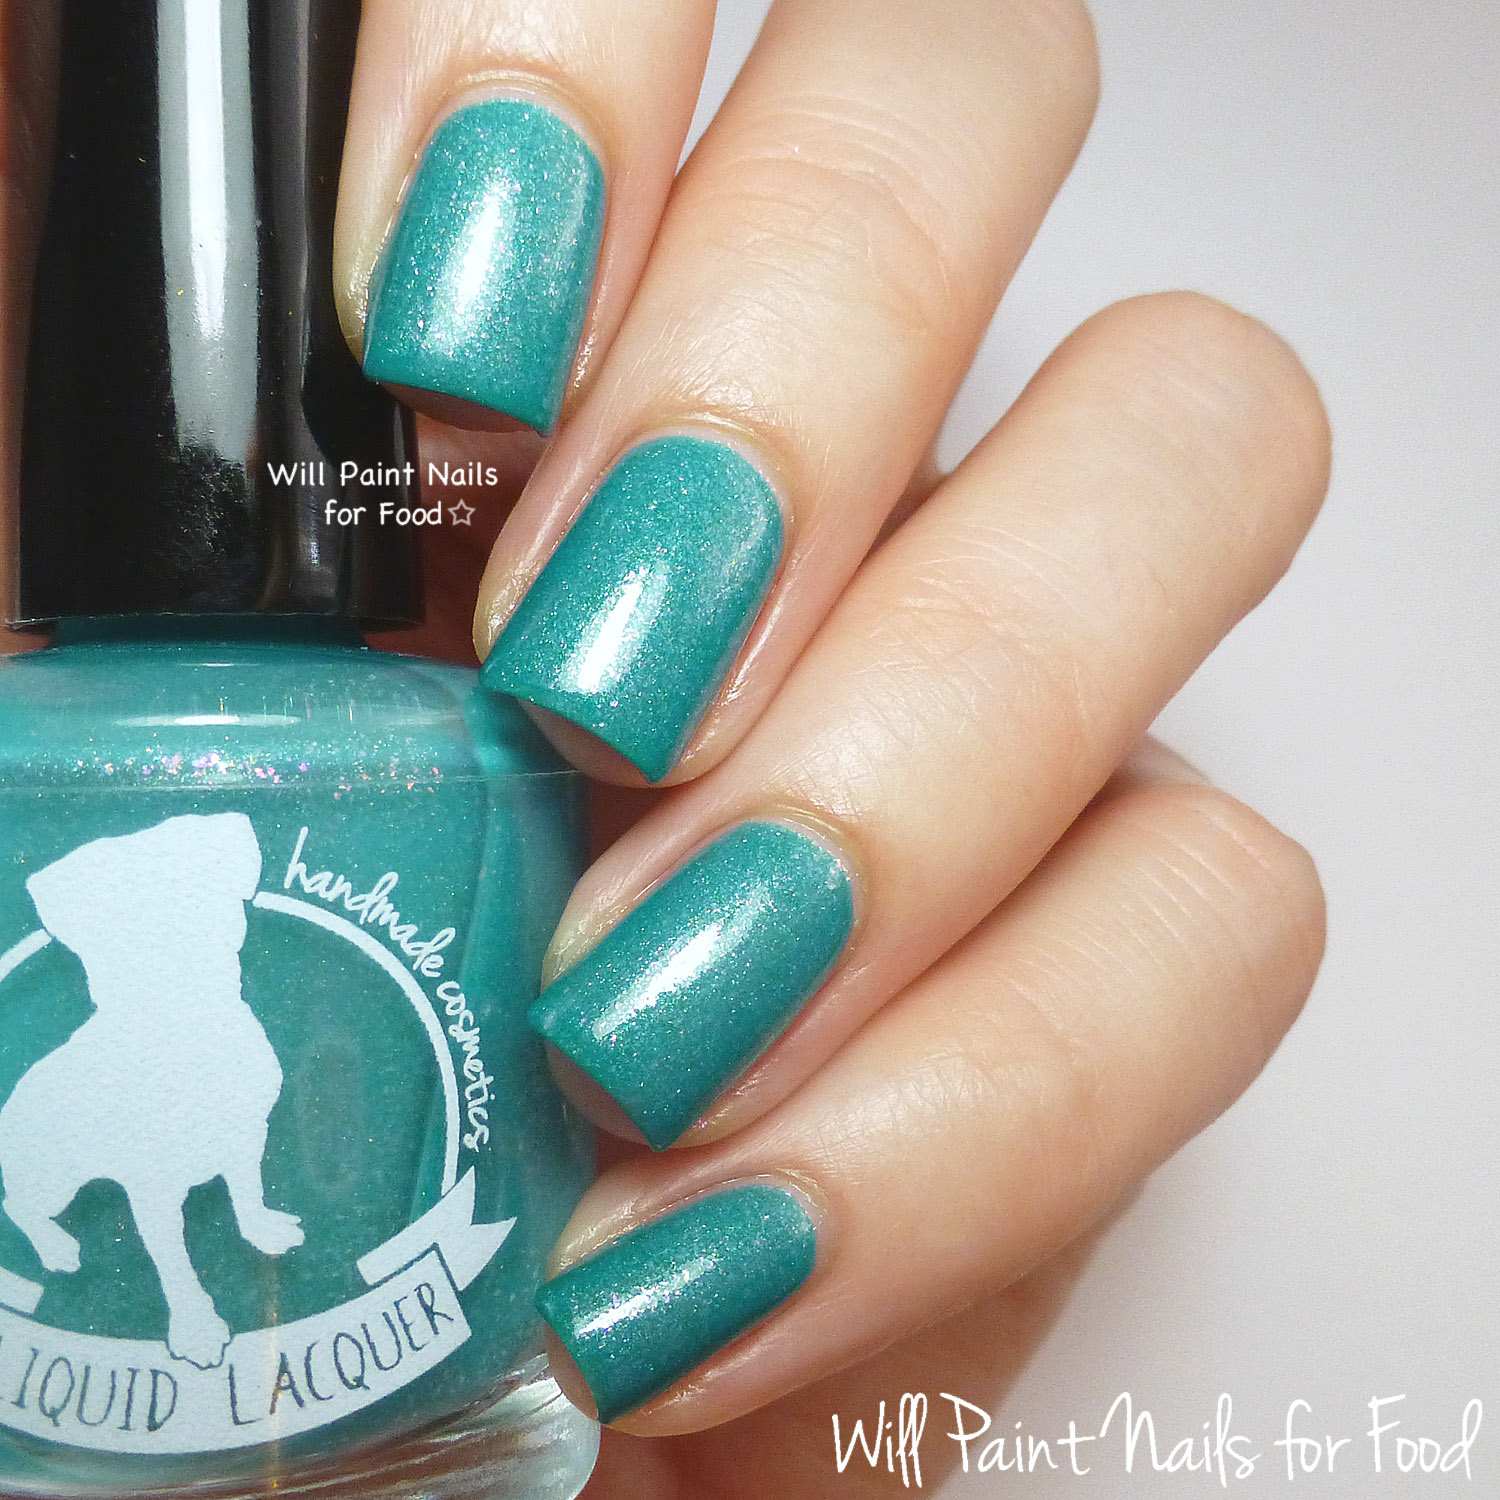 Aliquid Lacquer Puppy Love swatch